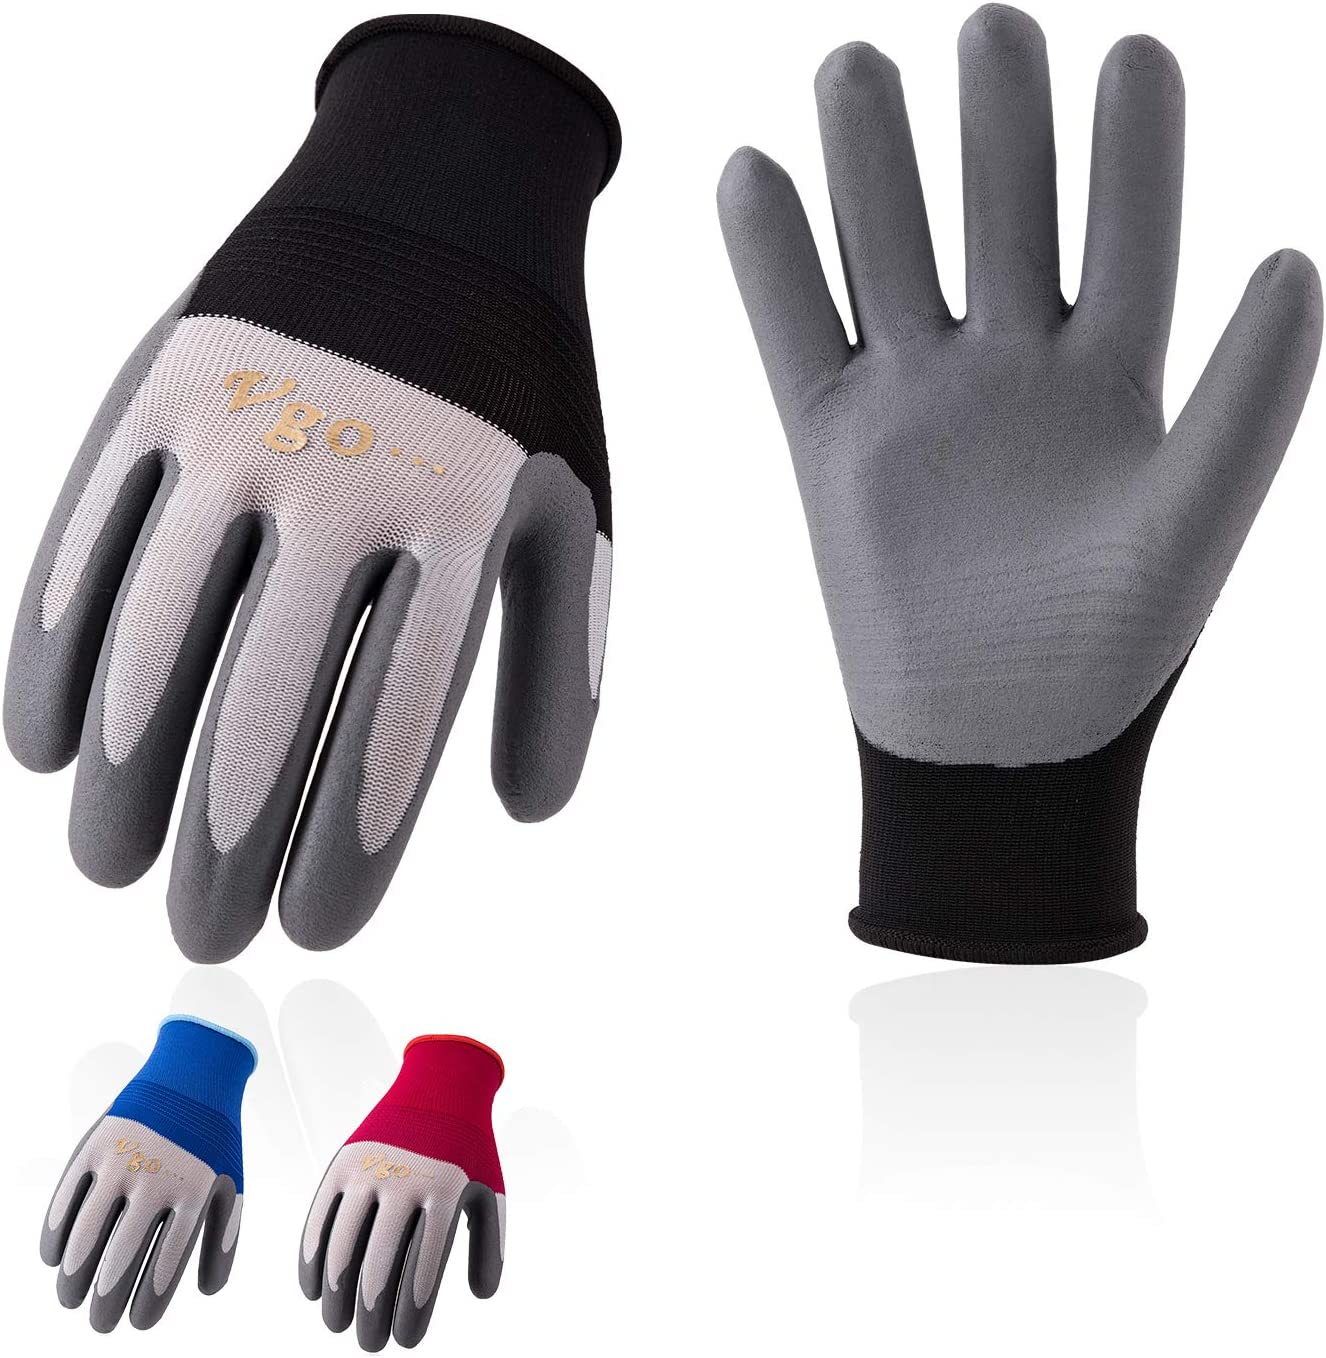 Vgo 10Pairs Nitrile Coated Nylon Kint Working Gloves for Garden Warehousing Driving (Size L, Black&Blue&Red, NT2144)